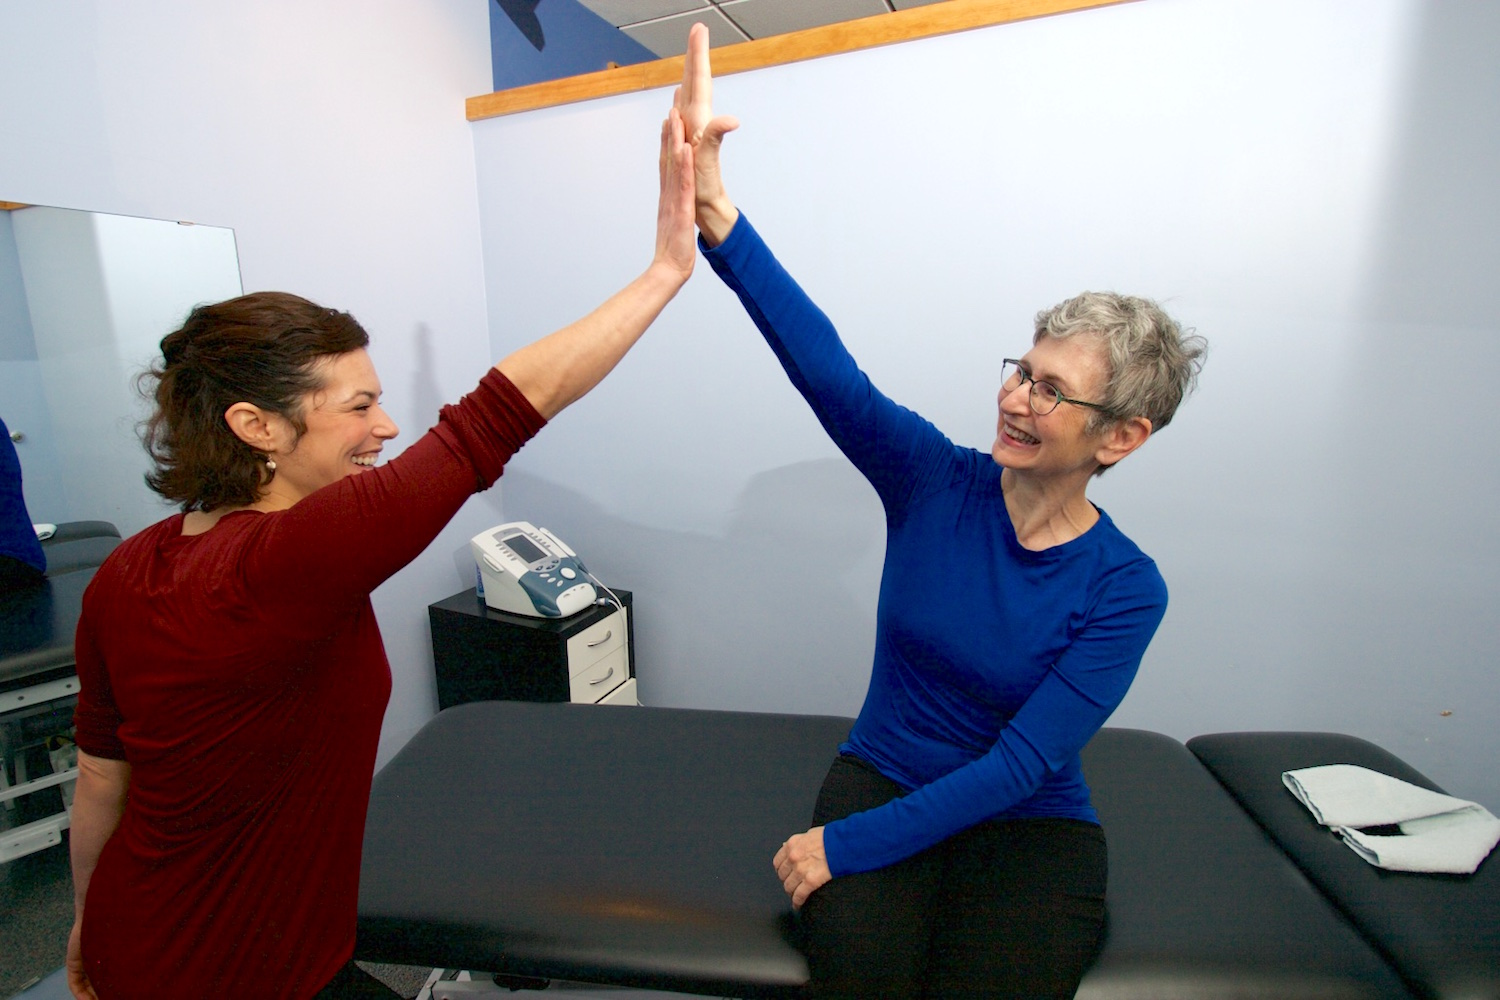 Physical Therapy - High Five